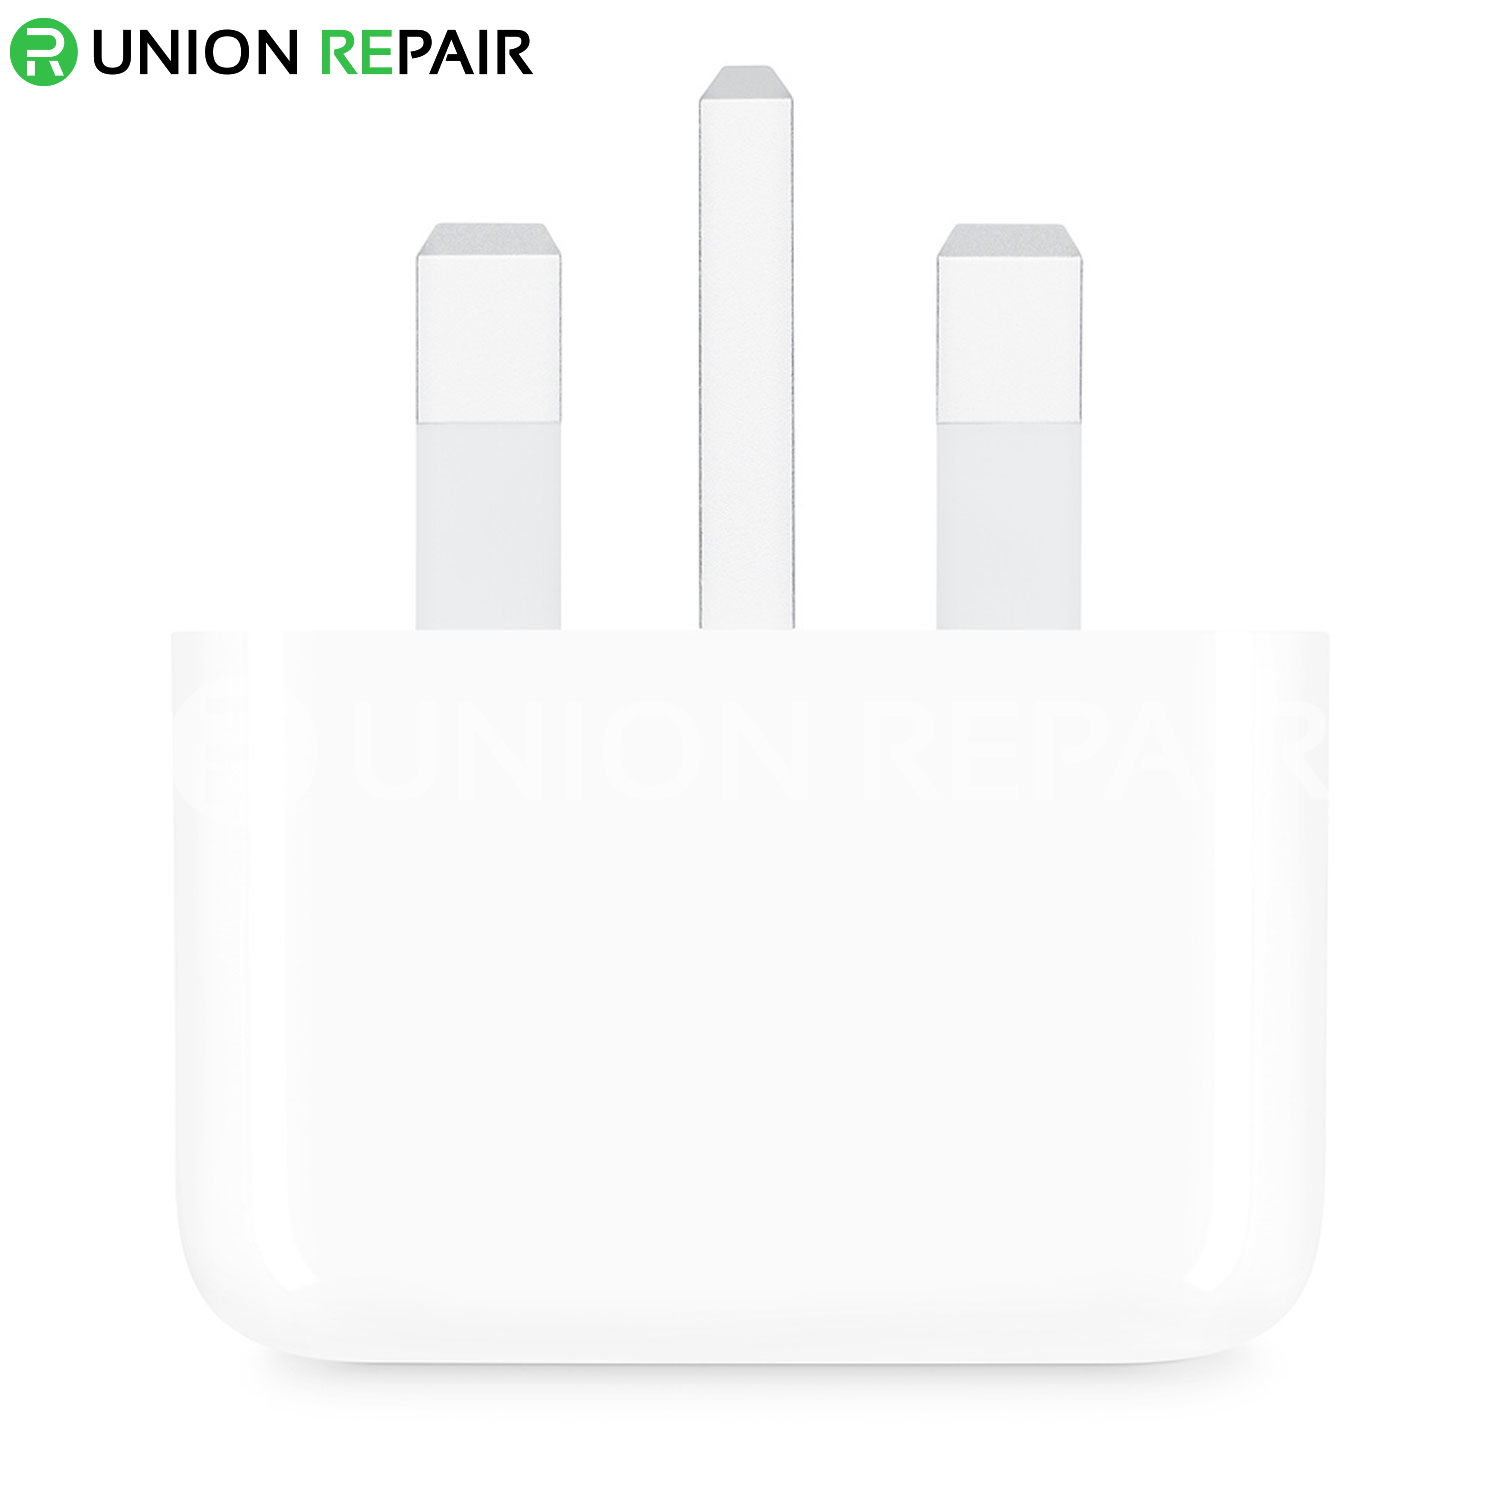 20W USB-C Power Adapter for iPhone - UK Version